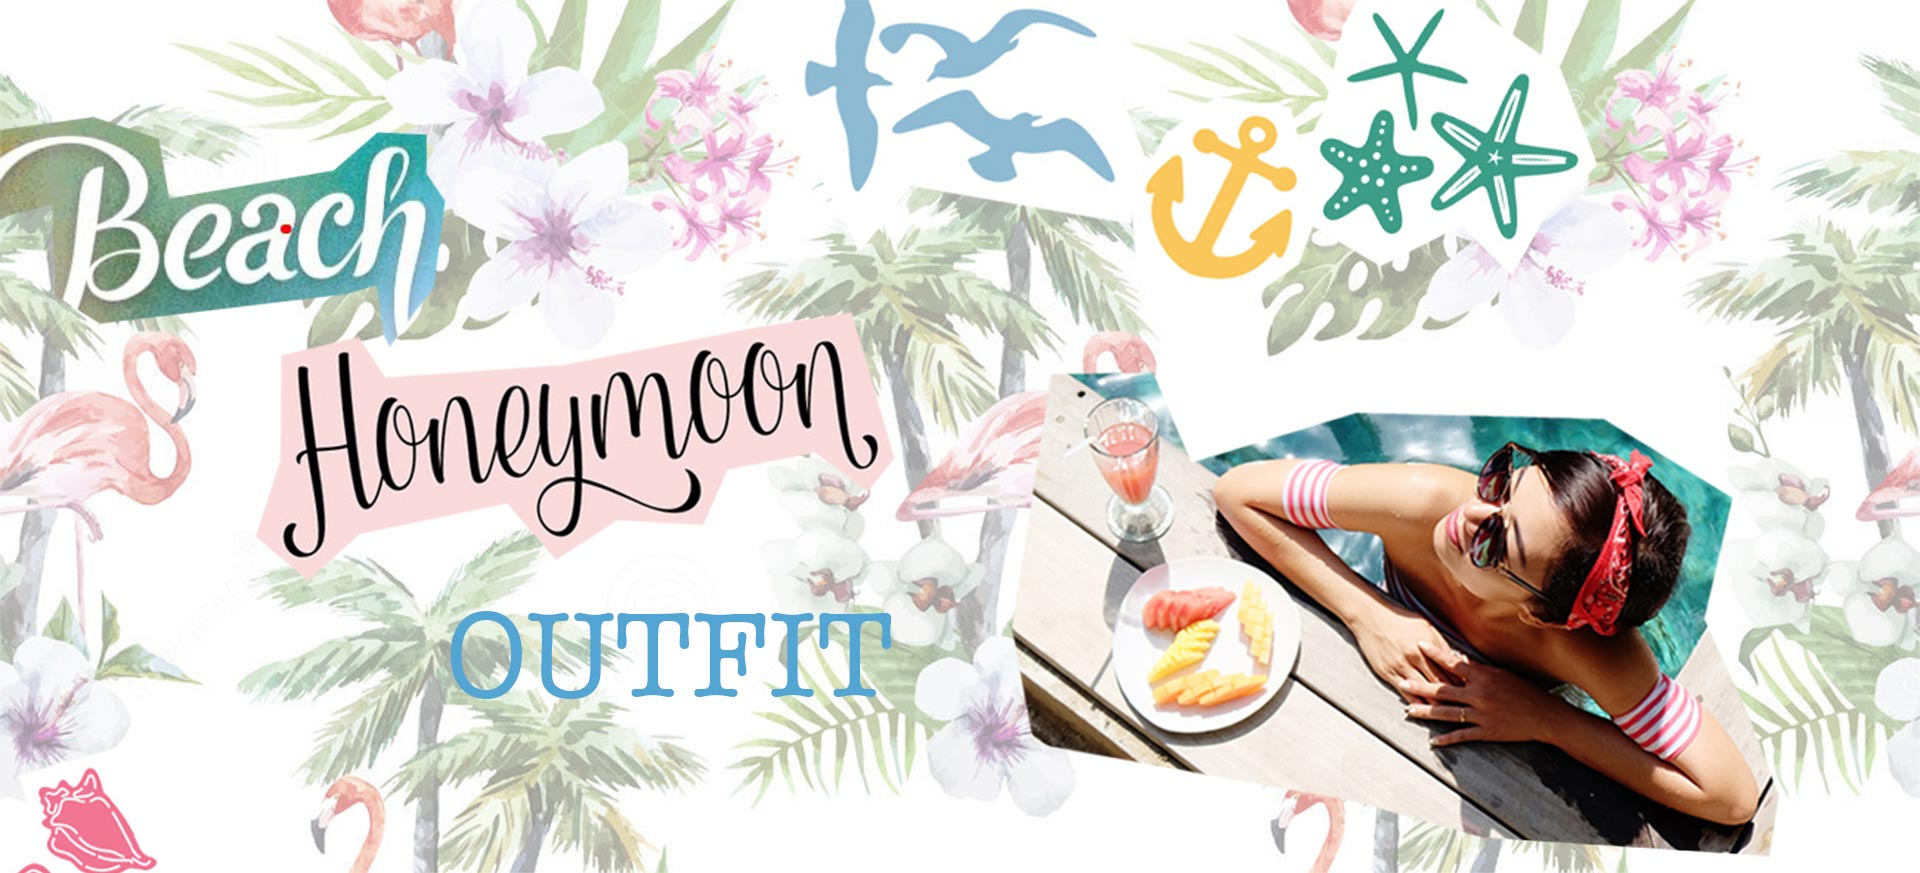 beach honeymoon outfit inspiration